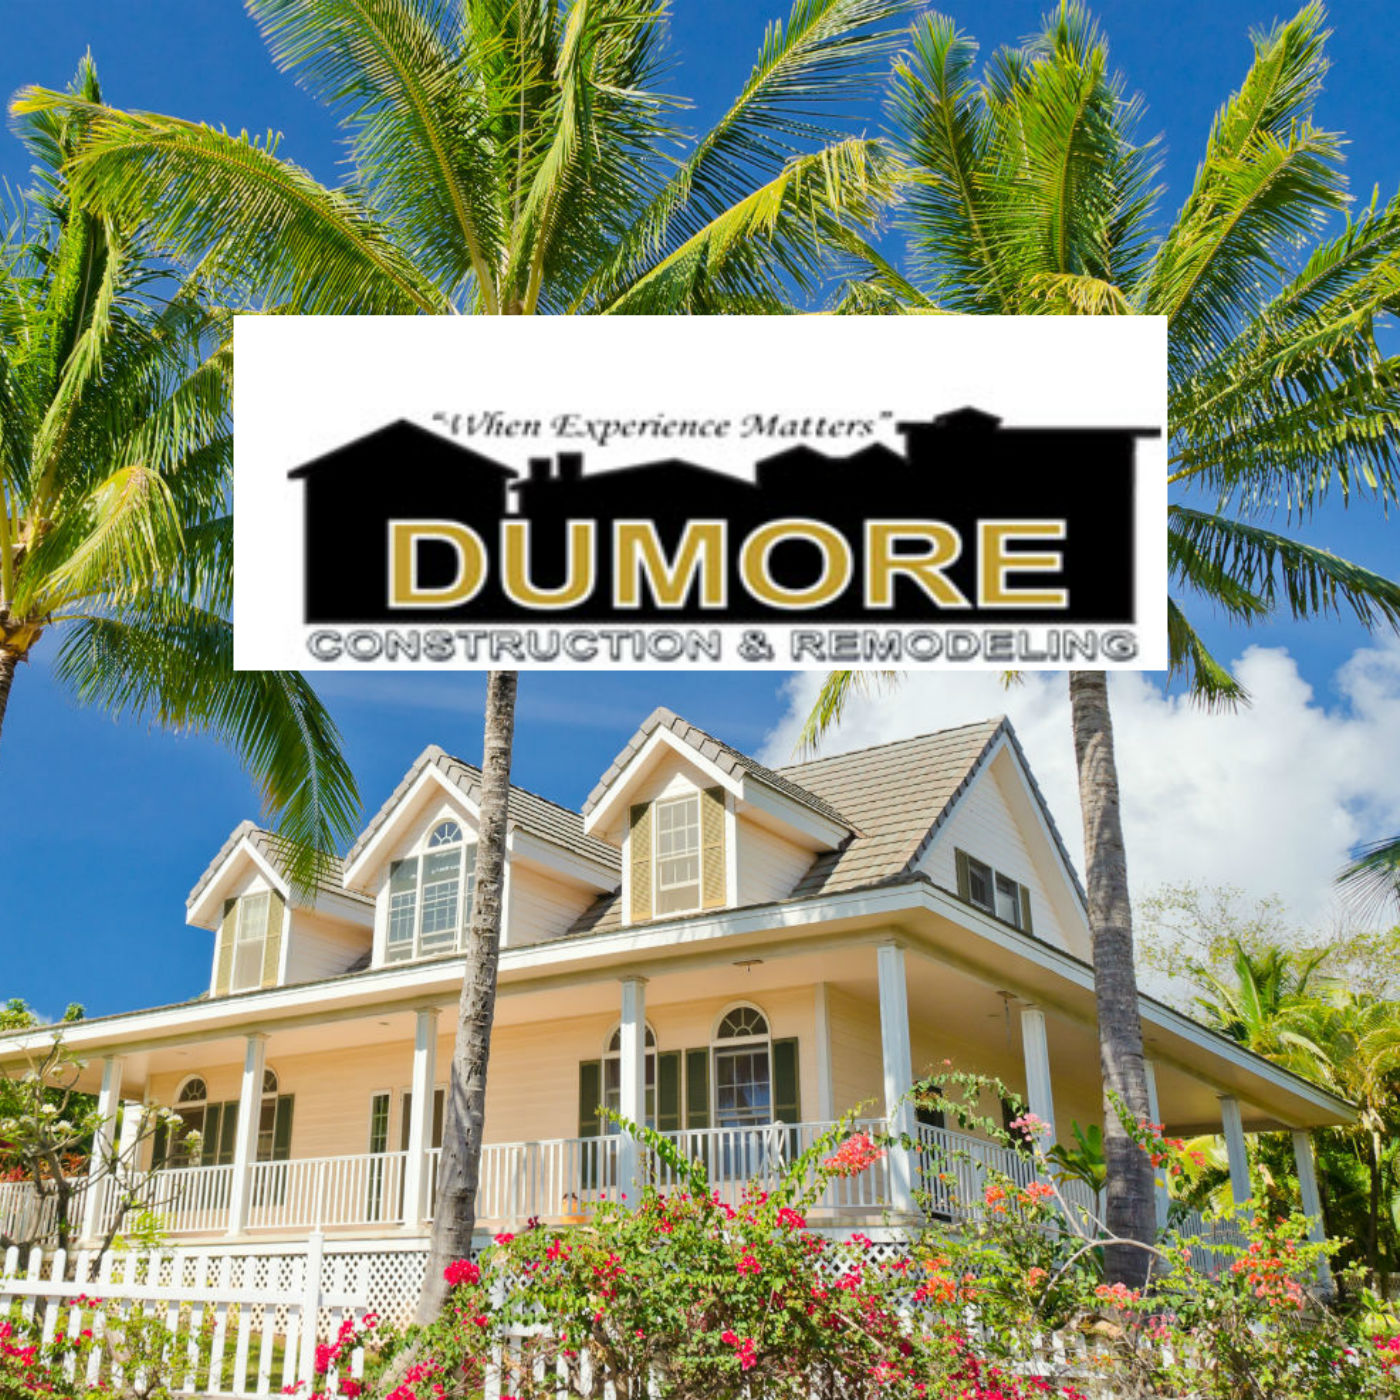 Dumore Construction & Remodeling